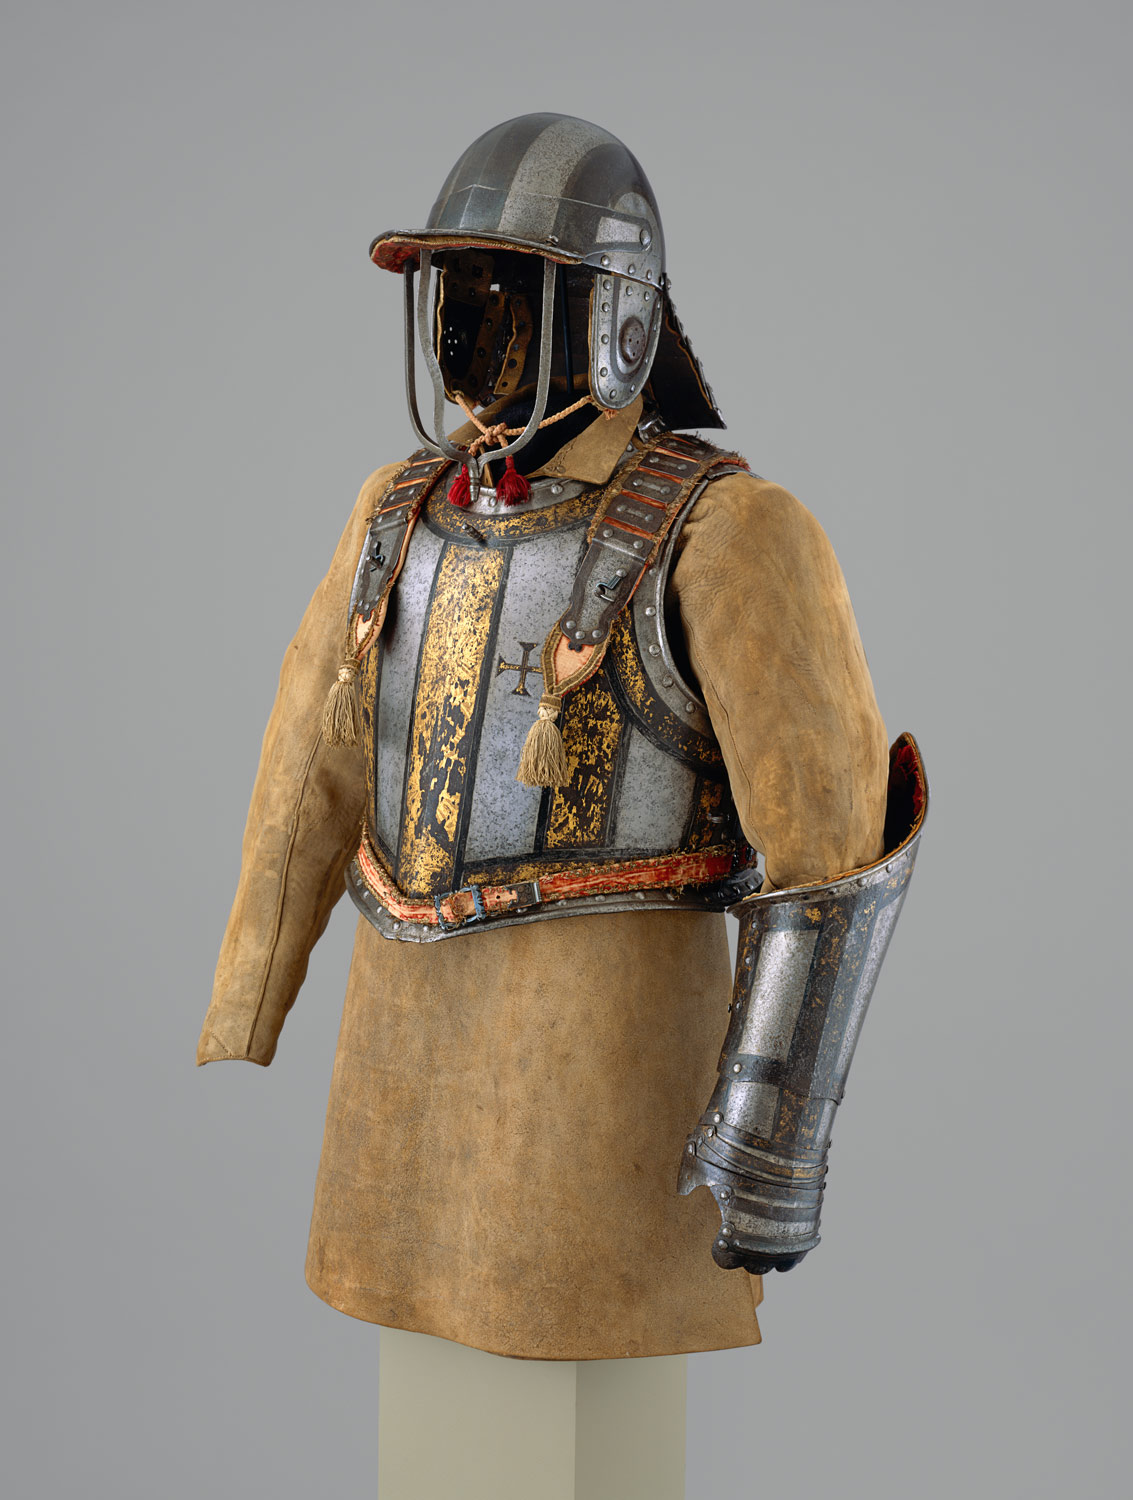 Harquebus Armor of Pedro II, King of Portugal